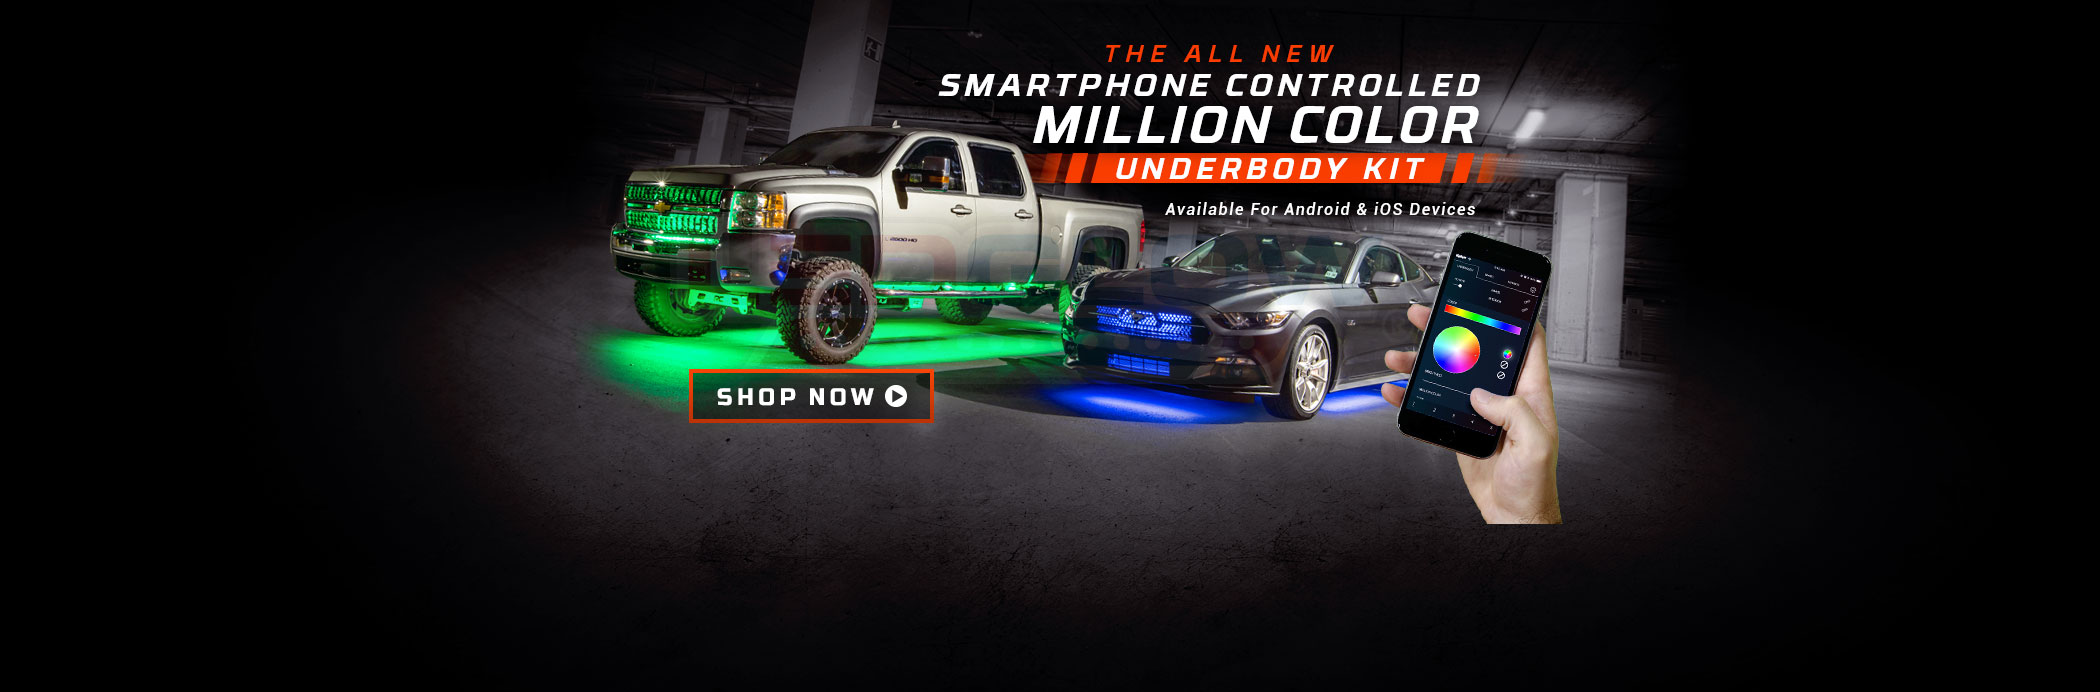 Smartphone Controlled Underbody Light Kits